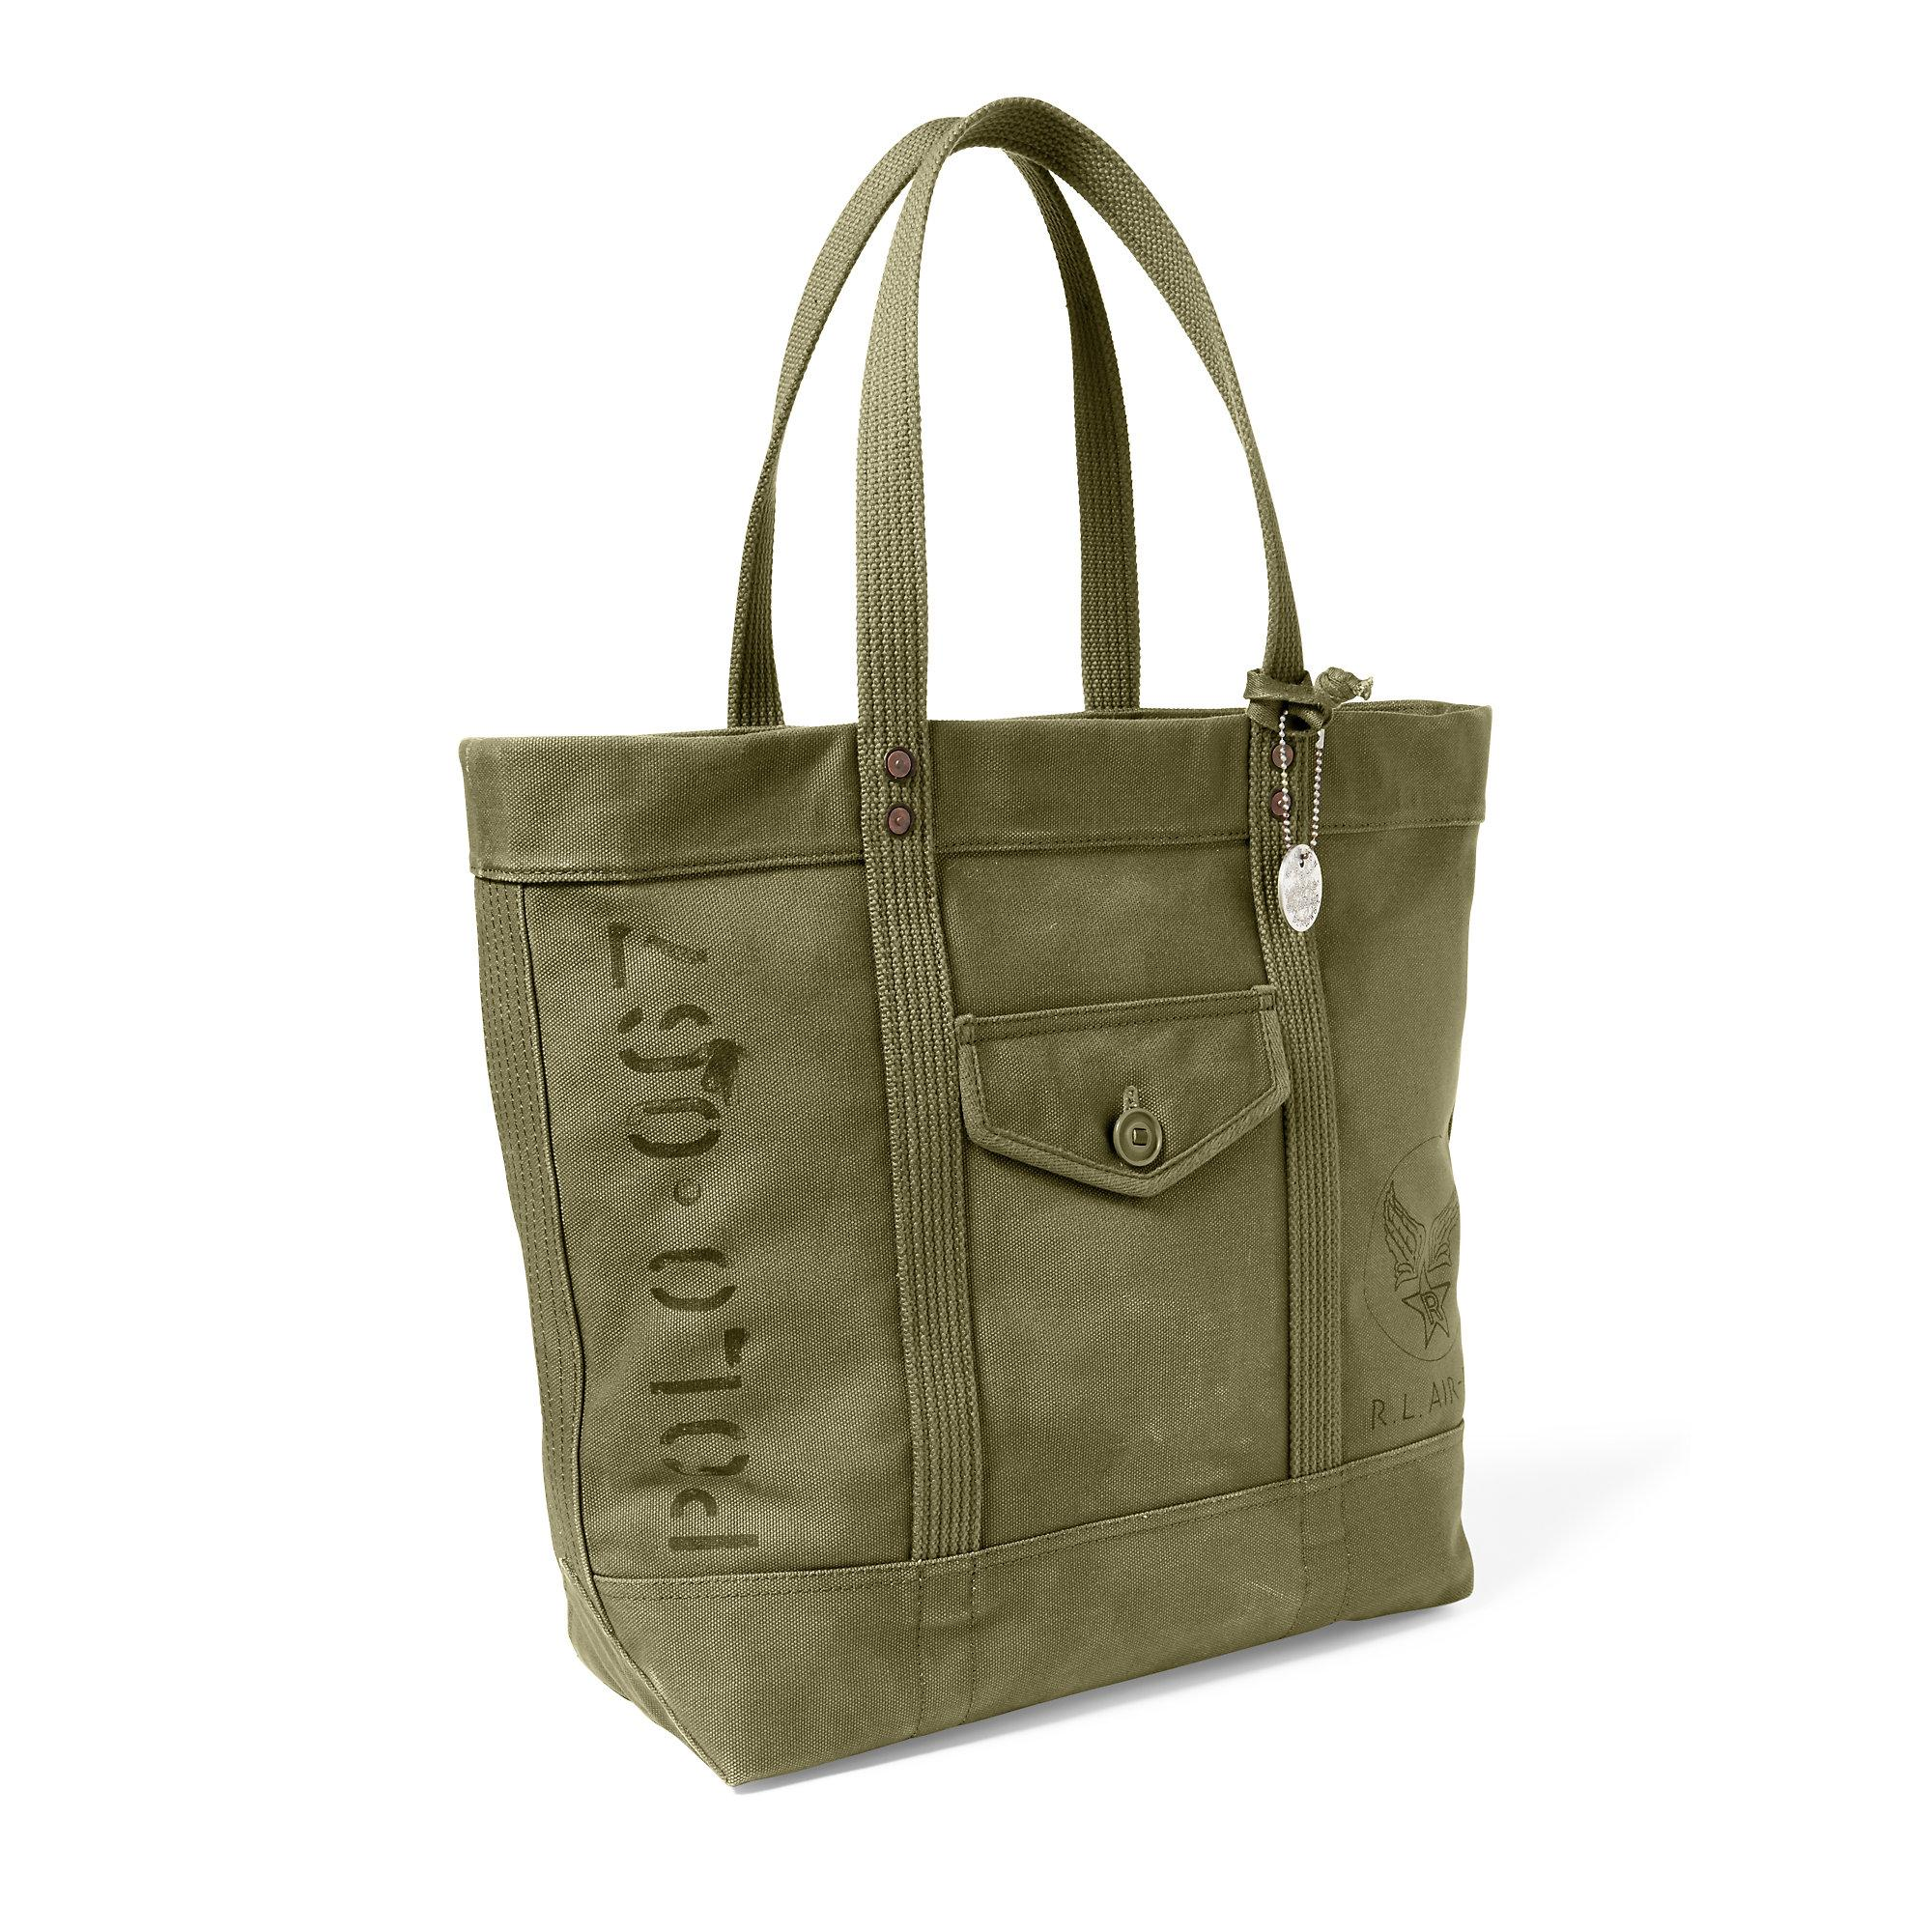 0fd5887609 Lyst - Polo Ralph Lauren Military Canvas Tote in Green